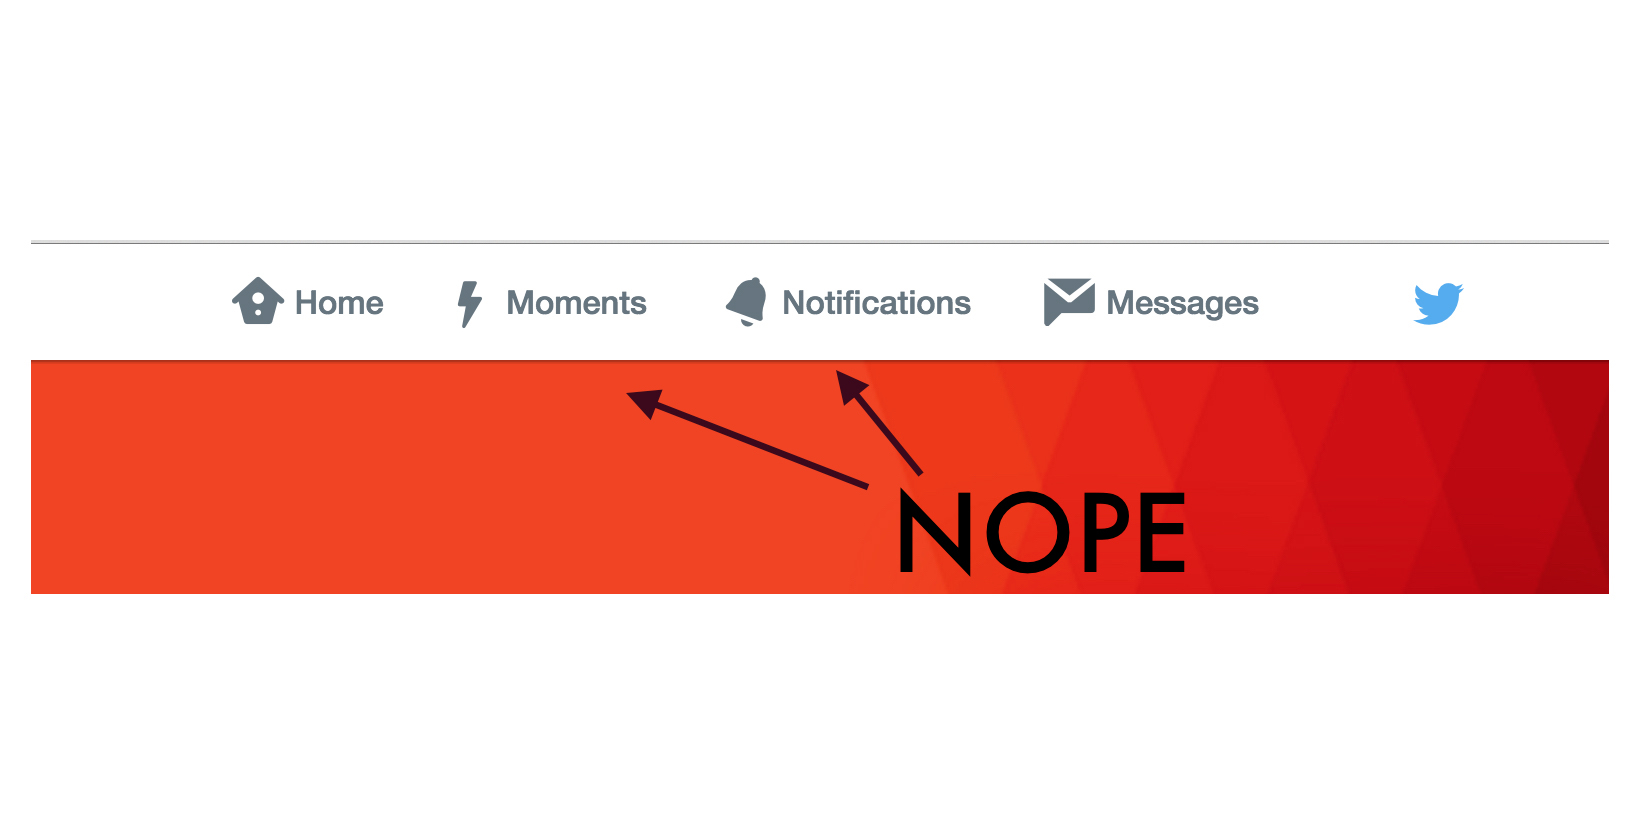 Twitter's new tactic to showcase Moments isn't interaction design, it's interference